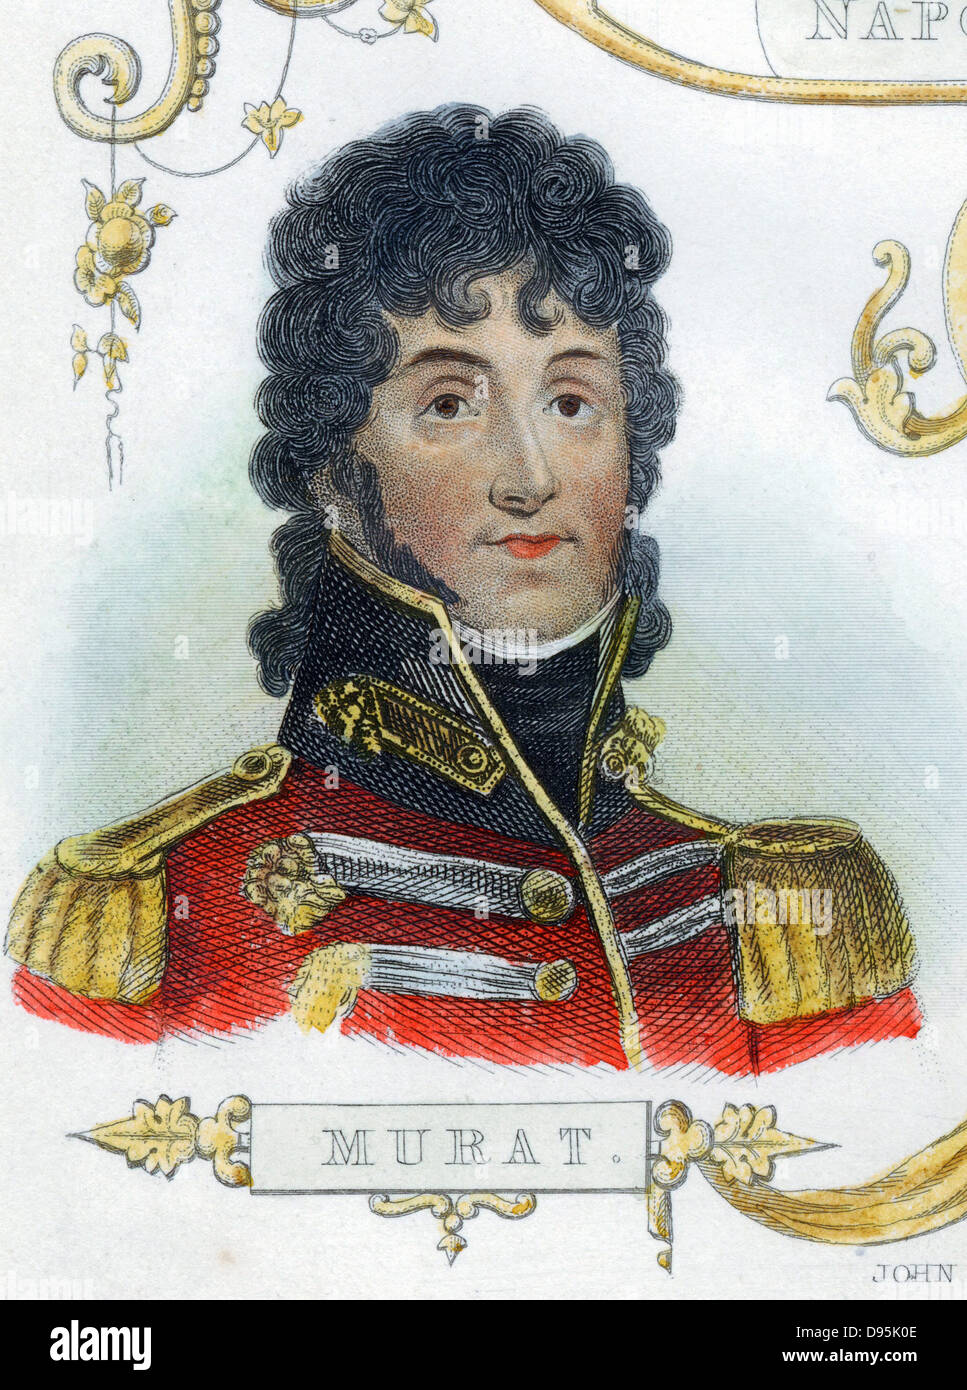 Joachim Murat (1767-1815) French soldier, King of Naples from 1808. Hand-coloured engraving - Stock Image